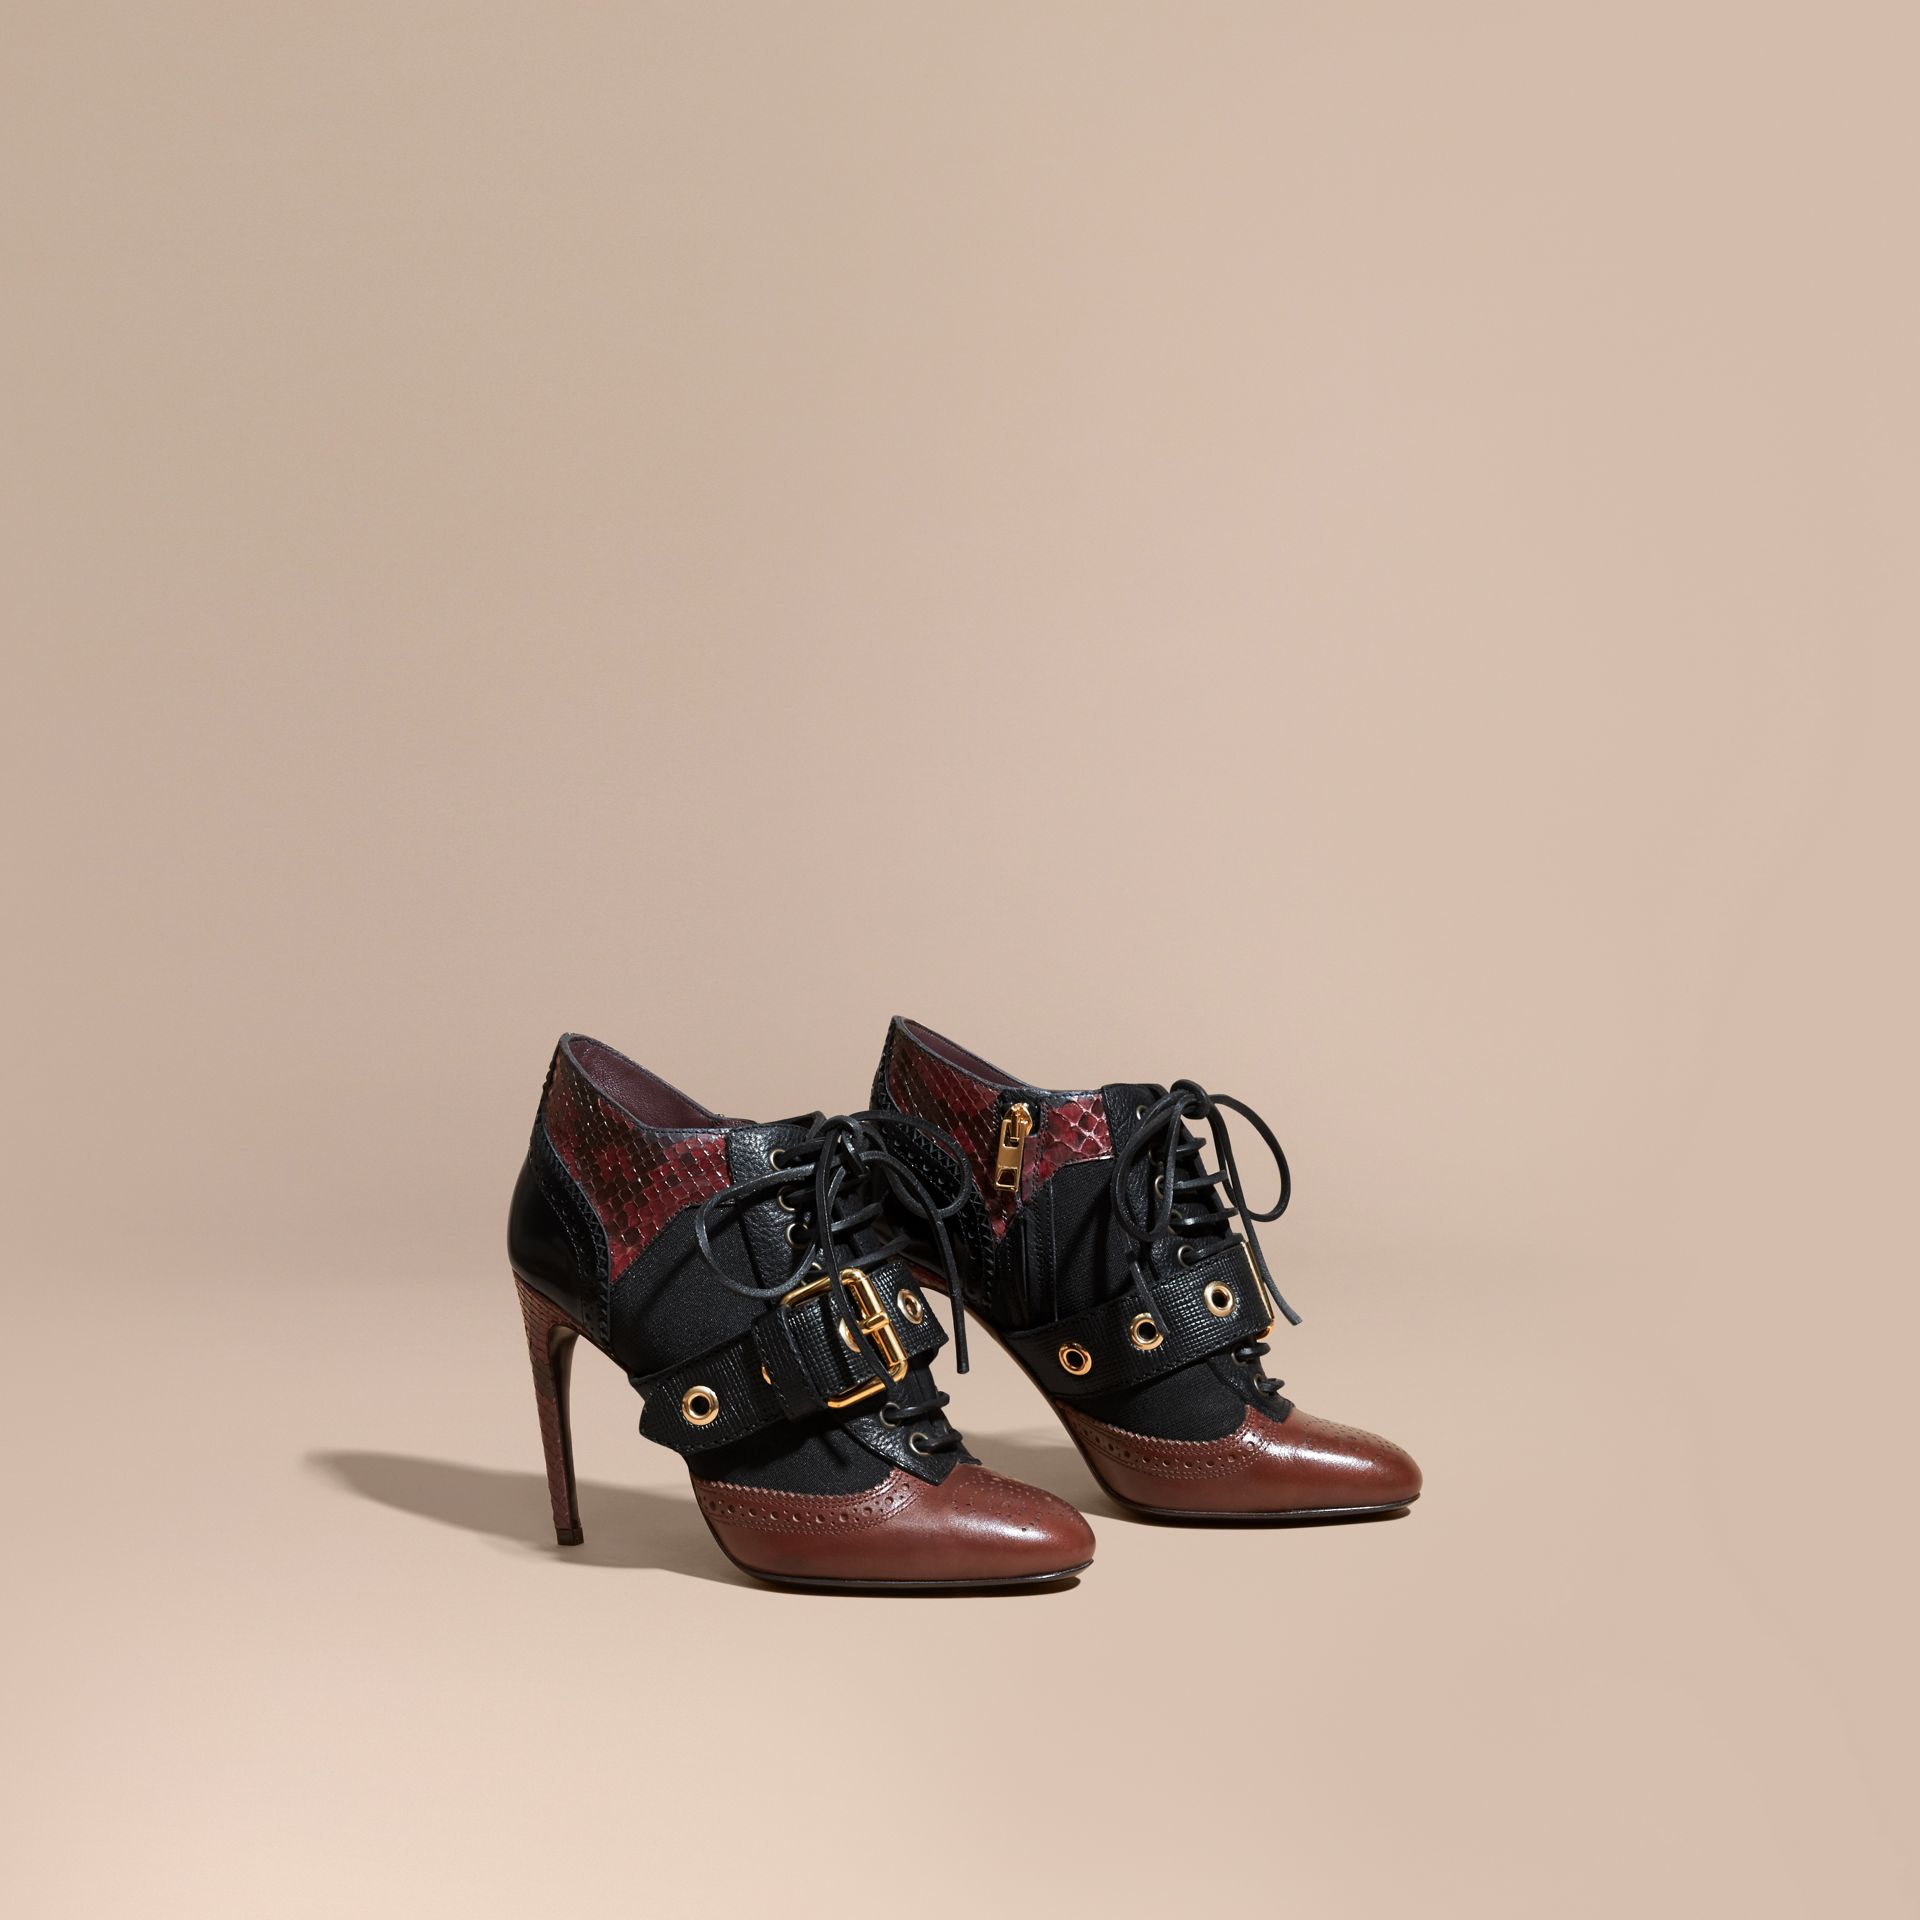 Bordeaux Buckle Detail Leather and Snakeskin Ankle Boots Bordeaux - gallery image 1